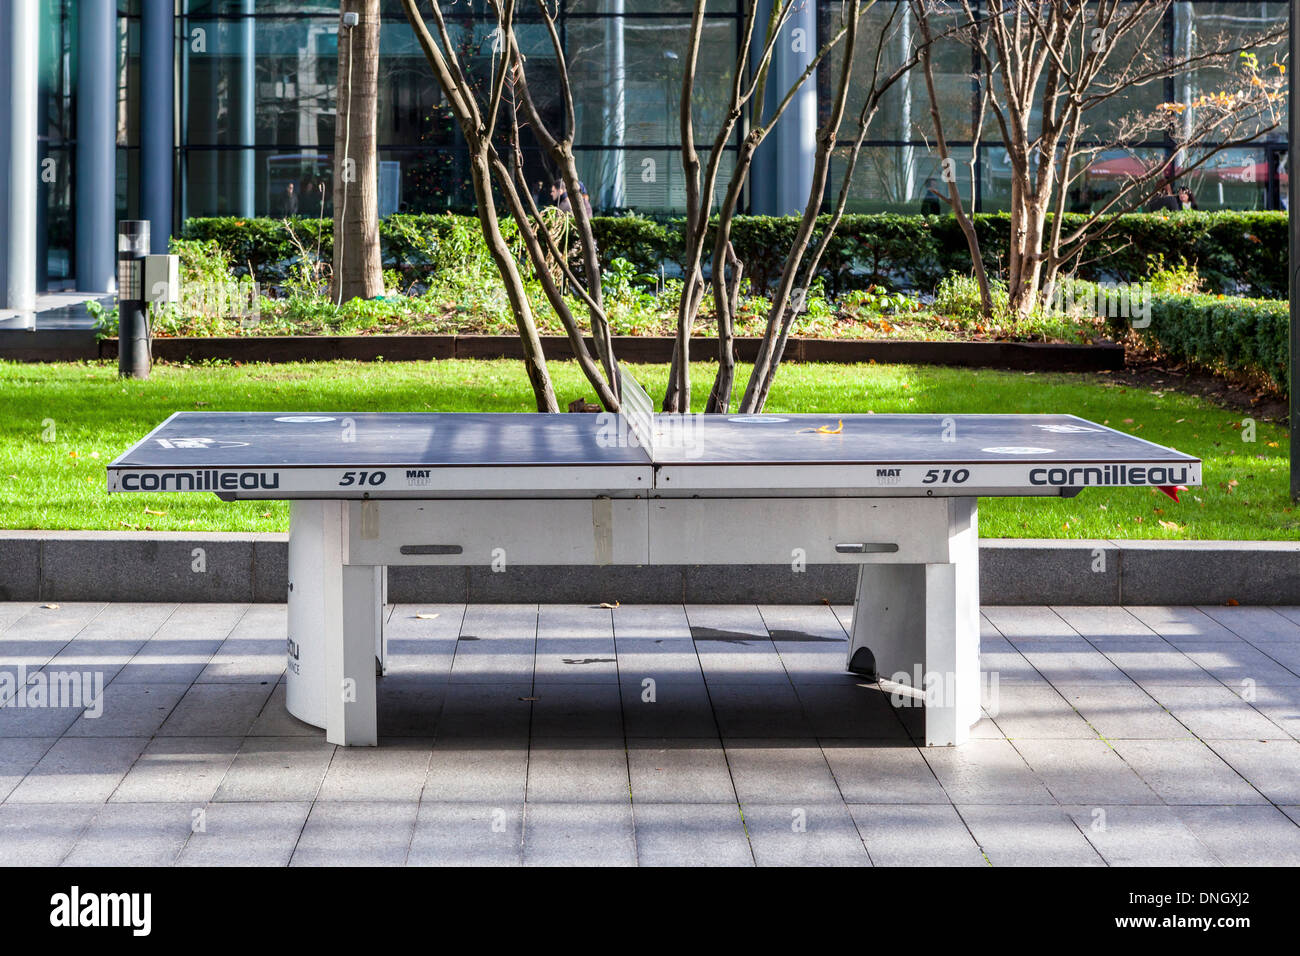 Espace vert et une table de tennis de table par Cornilleau à Bishops Square, Spitalfields, Londres Photo Stock